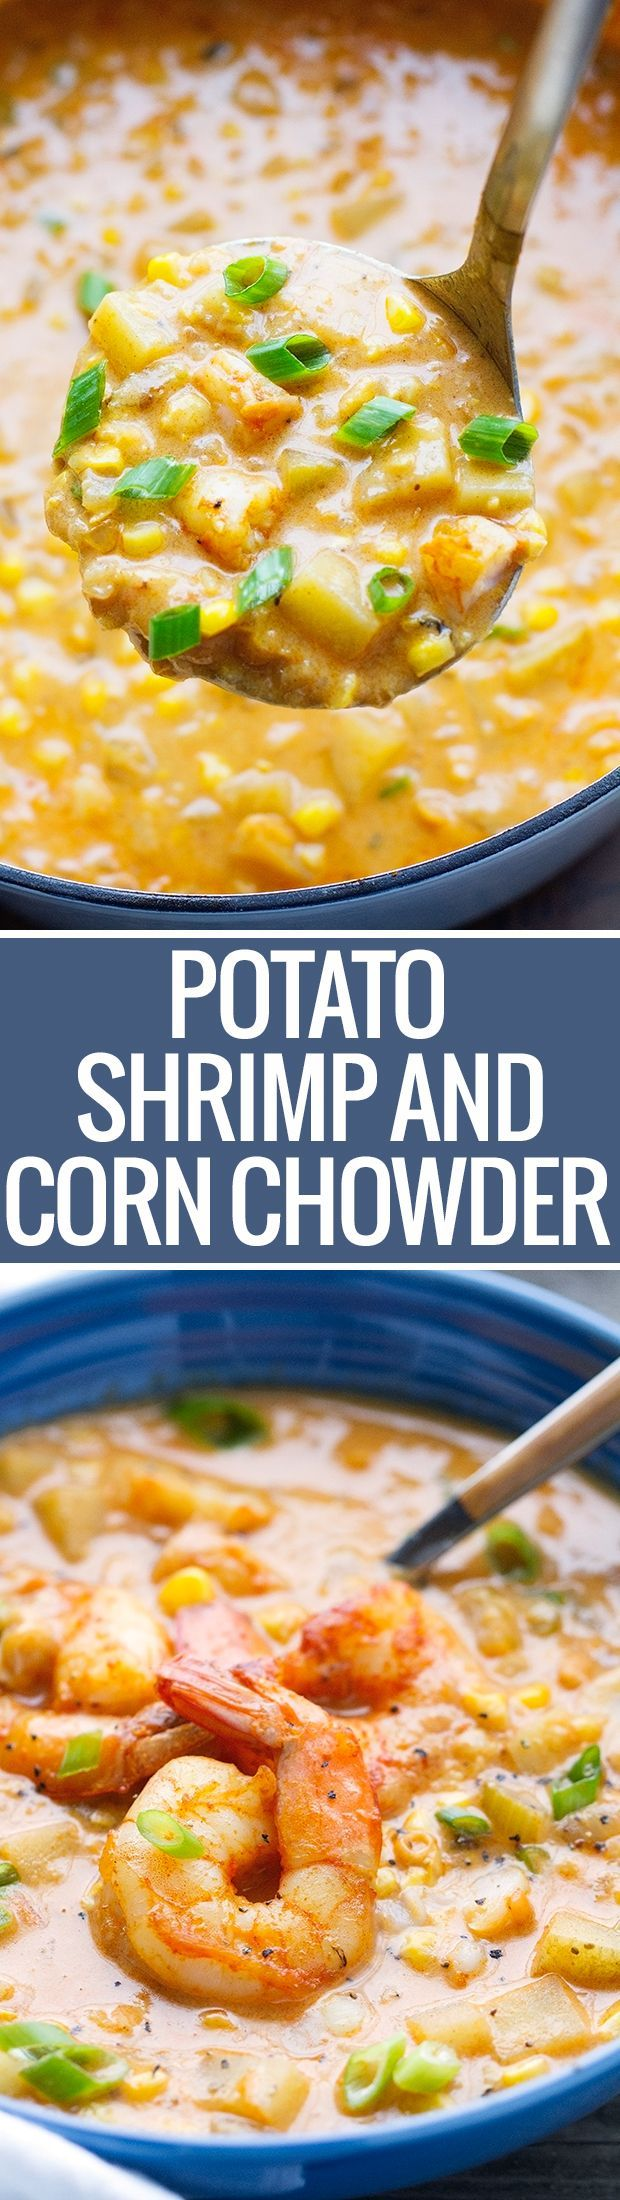 Shrimp and Corn Chowder - Loaded with potatoes and lots of flavor - this chowder is perfect with lots of crusty bread!